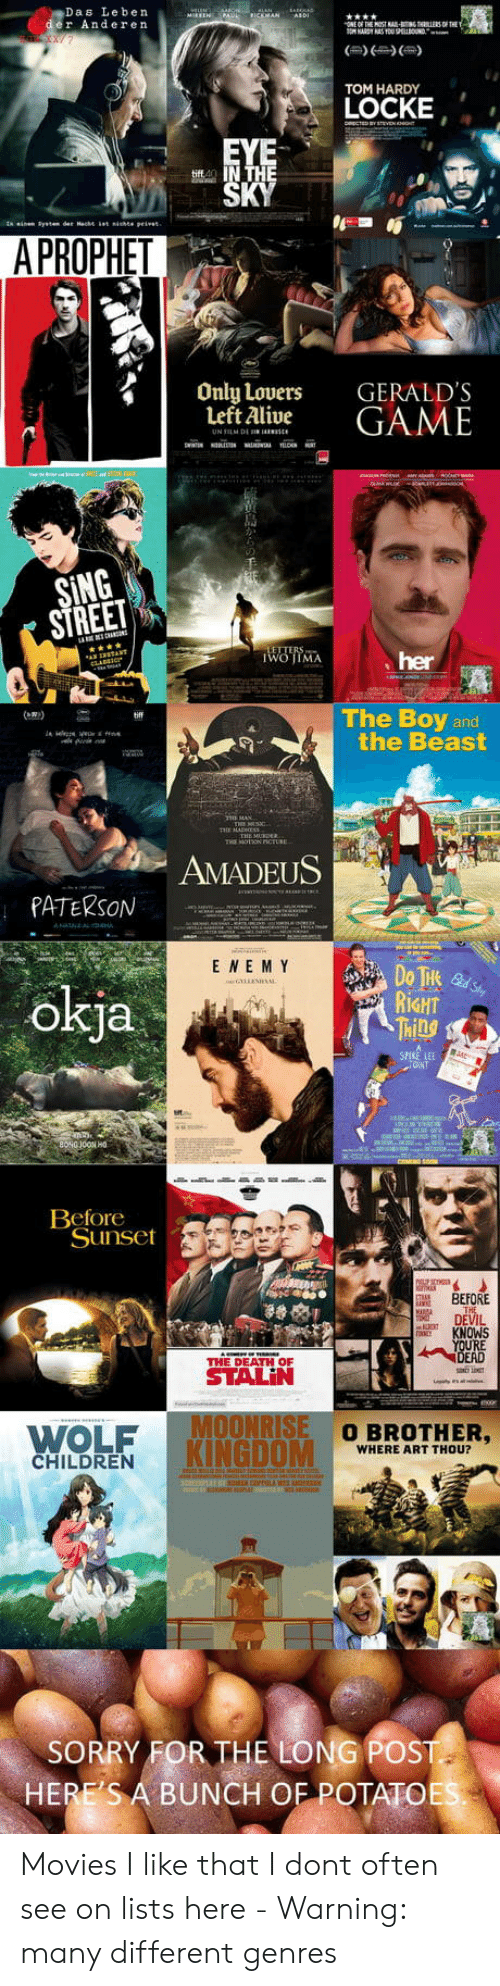 locke: Das Leben  er Anderen  TOM HARDY  LOCKE  A PROPHET  Only Lovers  Left Alive  GERALD'S  GAME  SING  STREE  her  The Boy and  the Beast  AMADEUS  PATERSON  E NE M Y  okja  RİGHT  Ml  CANT  Beforeot  Sunset  BEFORE  DEVIL  KNOWS  RE  THE DEATH OF  WOLF  KINGDOM  O BROTHER,  WHERE ART THOU?  CHILDREN  SORRY FOR THE LONG POST  HERE'S A BUNCH OF POTATOE Movies I like that I dont often see on lists here - Warning: many different genres